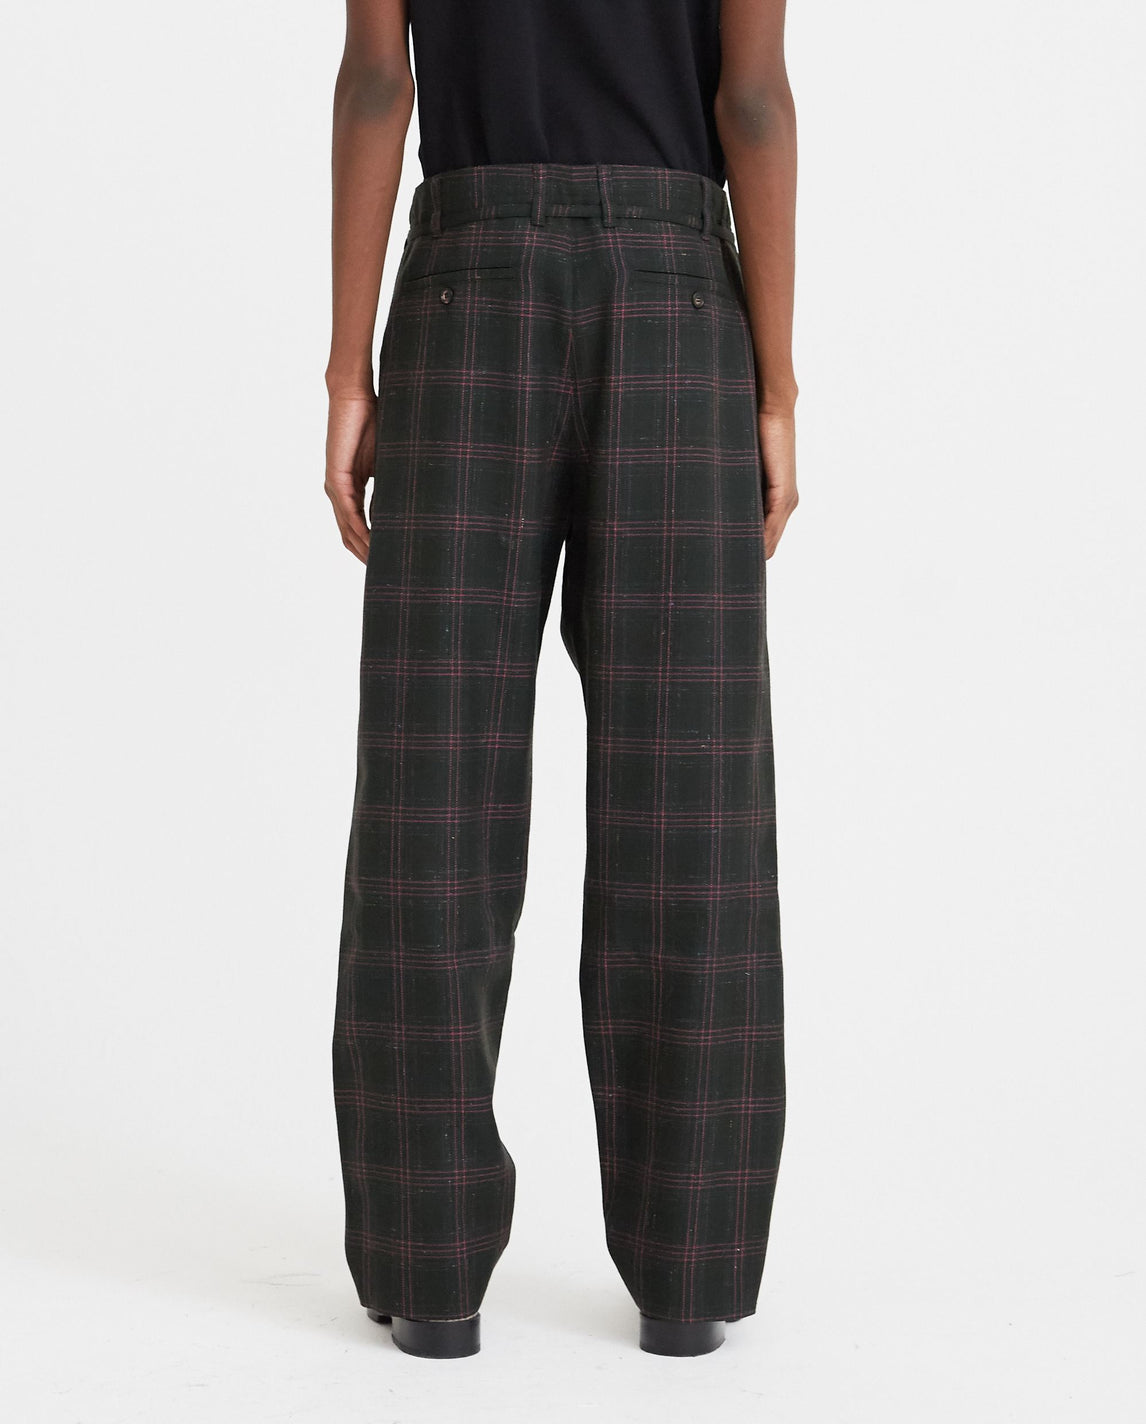 Checked Trousers - Black MENS MARNI